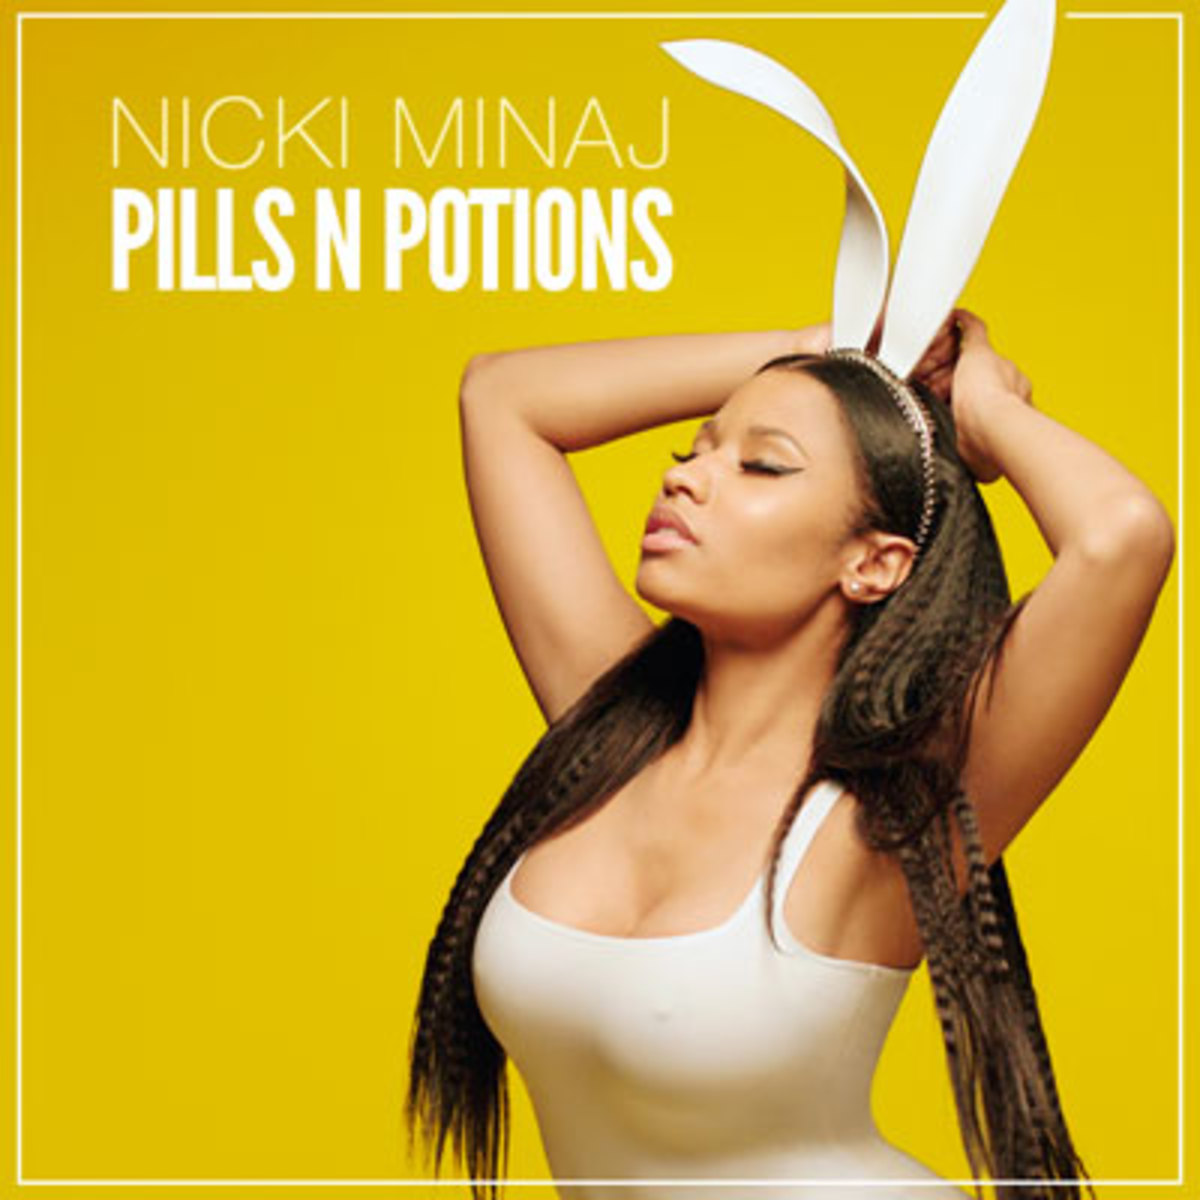 nickiminaj-pillspotions.jpg